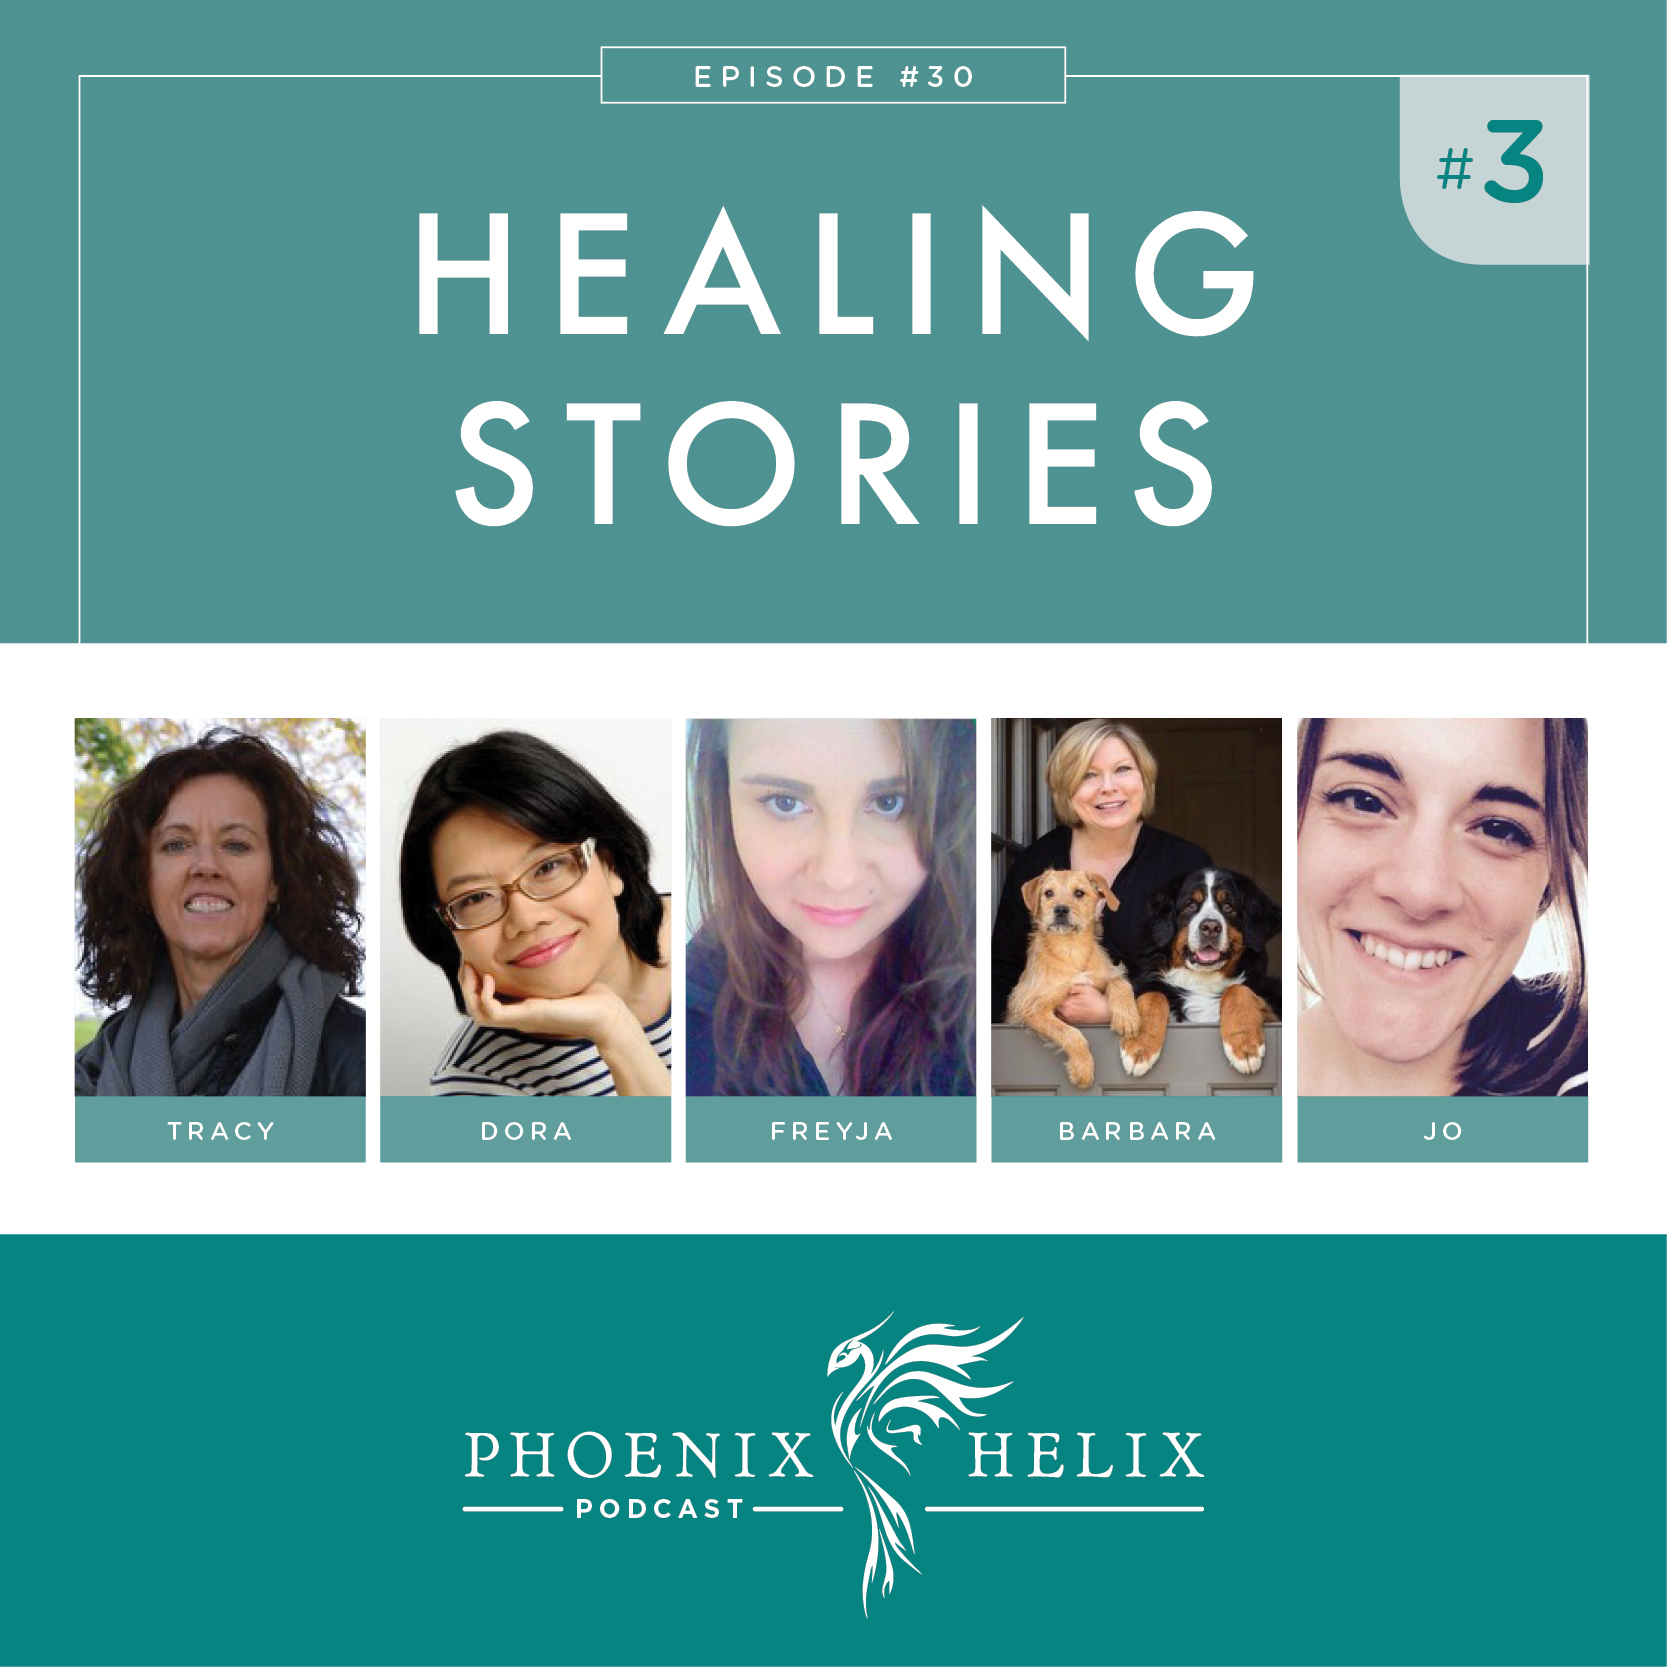 Healing Stories 3 | Phoenix Helix Podcast (Scleroderma, Polymyositis, Raynaud's, Psoriasis, Grave's Disease, Uveitis, and Parkinson's Disease)